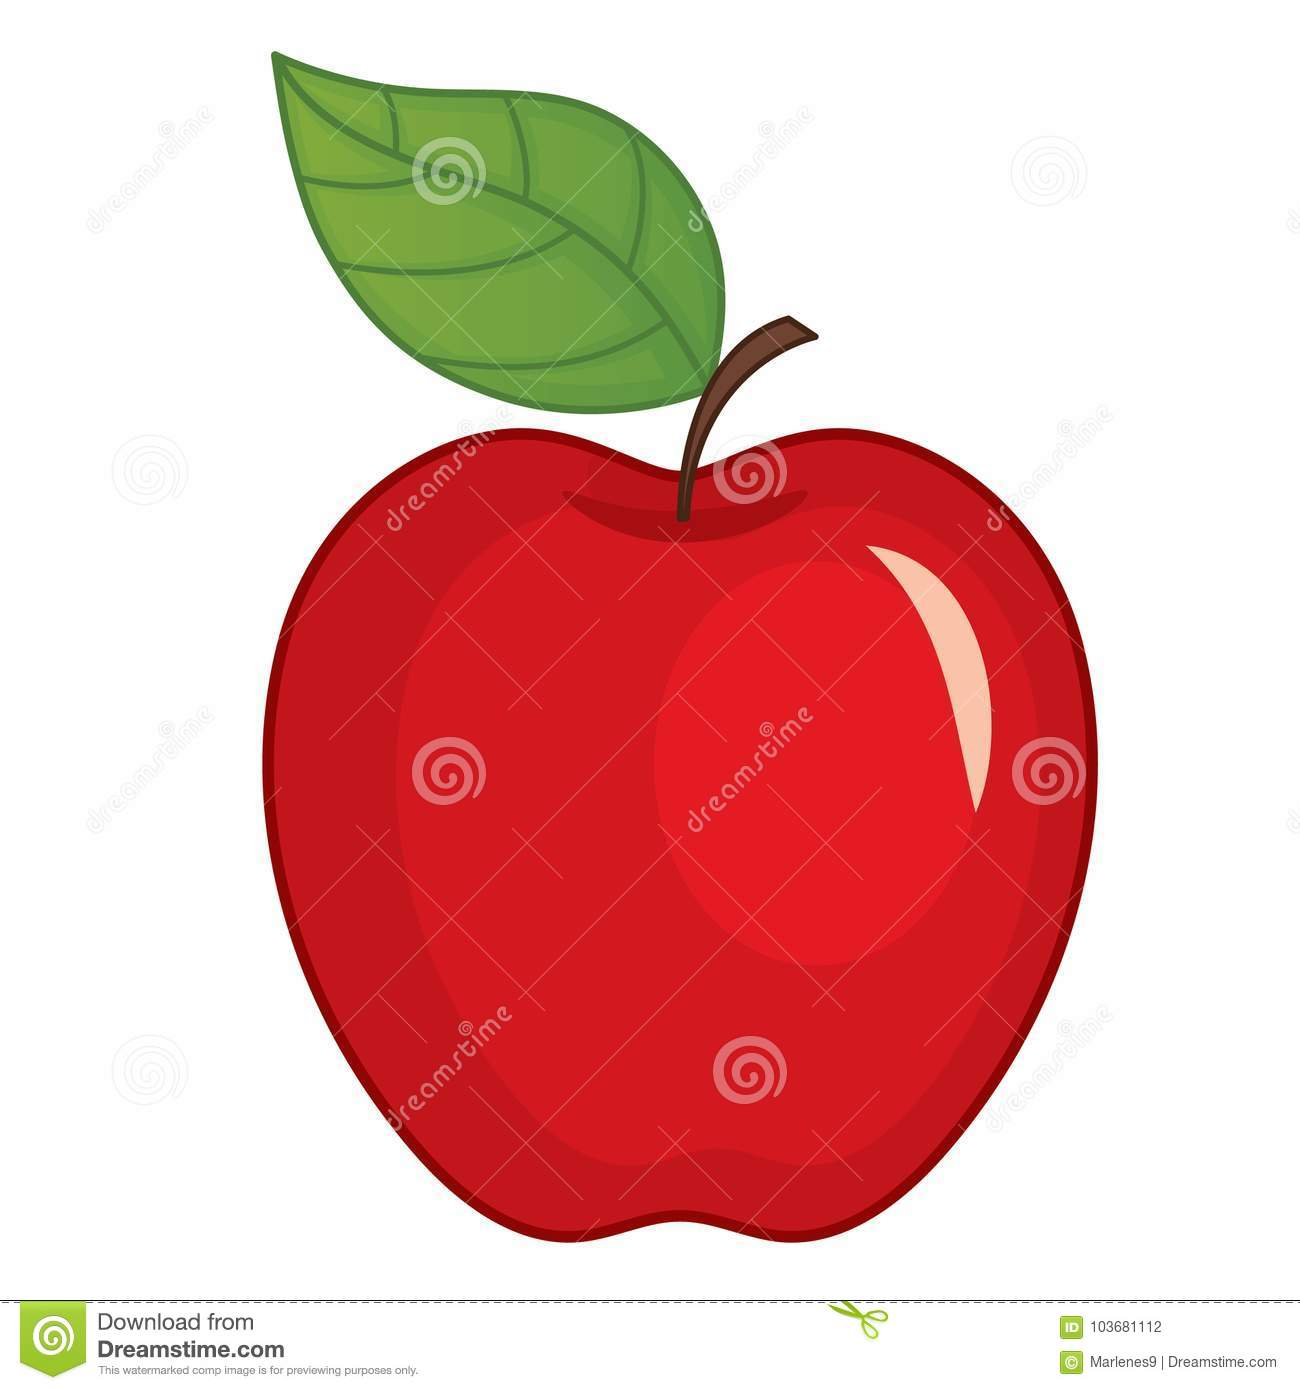 Vector Red Apple with Leaf